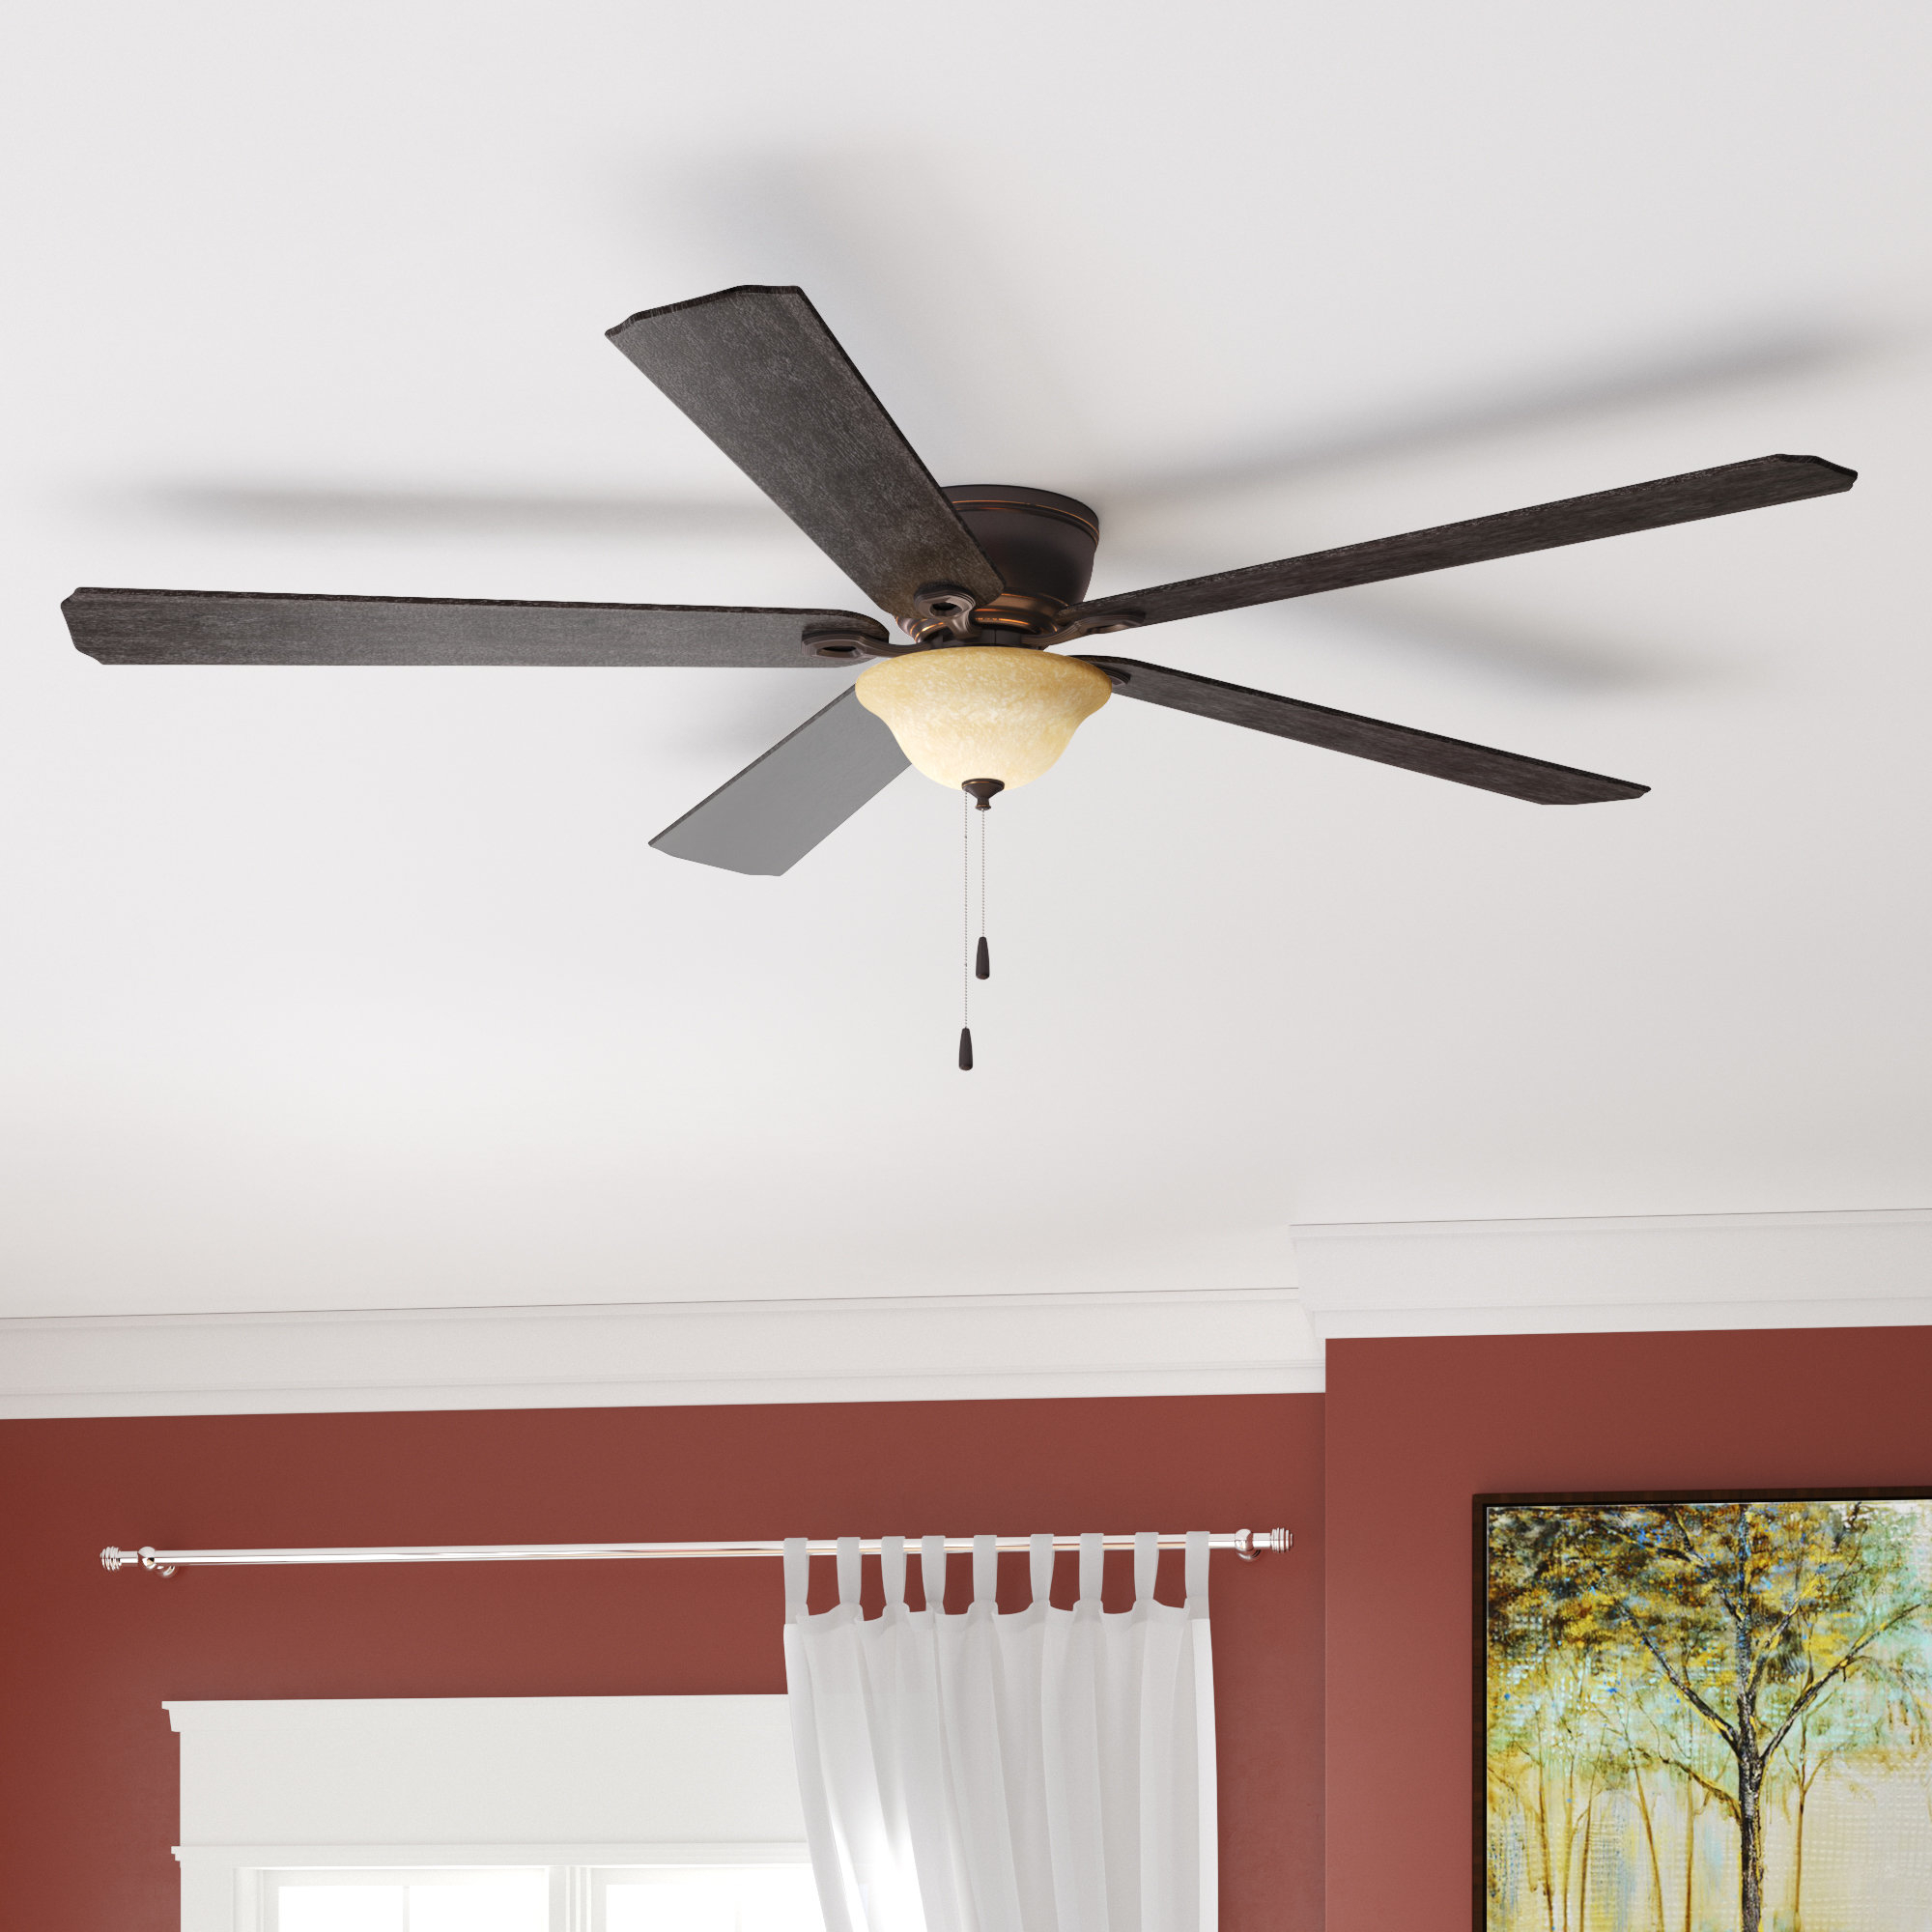 "Well Liked Auden 5 Blade Led Ceiling Fans For 52"" Crumbley 5 Blade Ceiling Fan, Light Kit Included (View 20 of 20)"